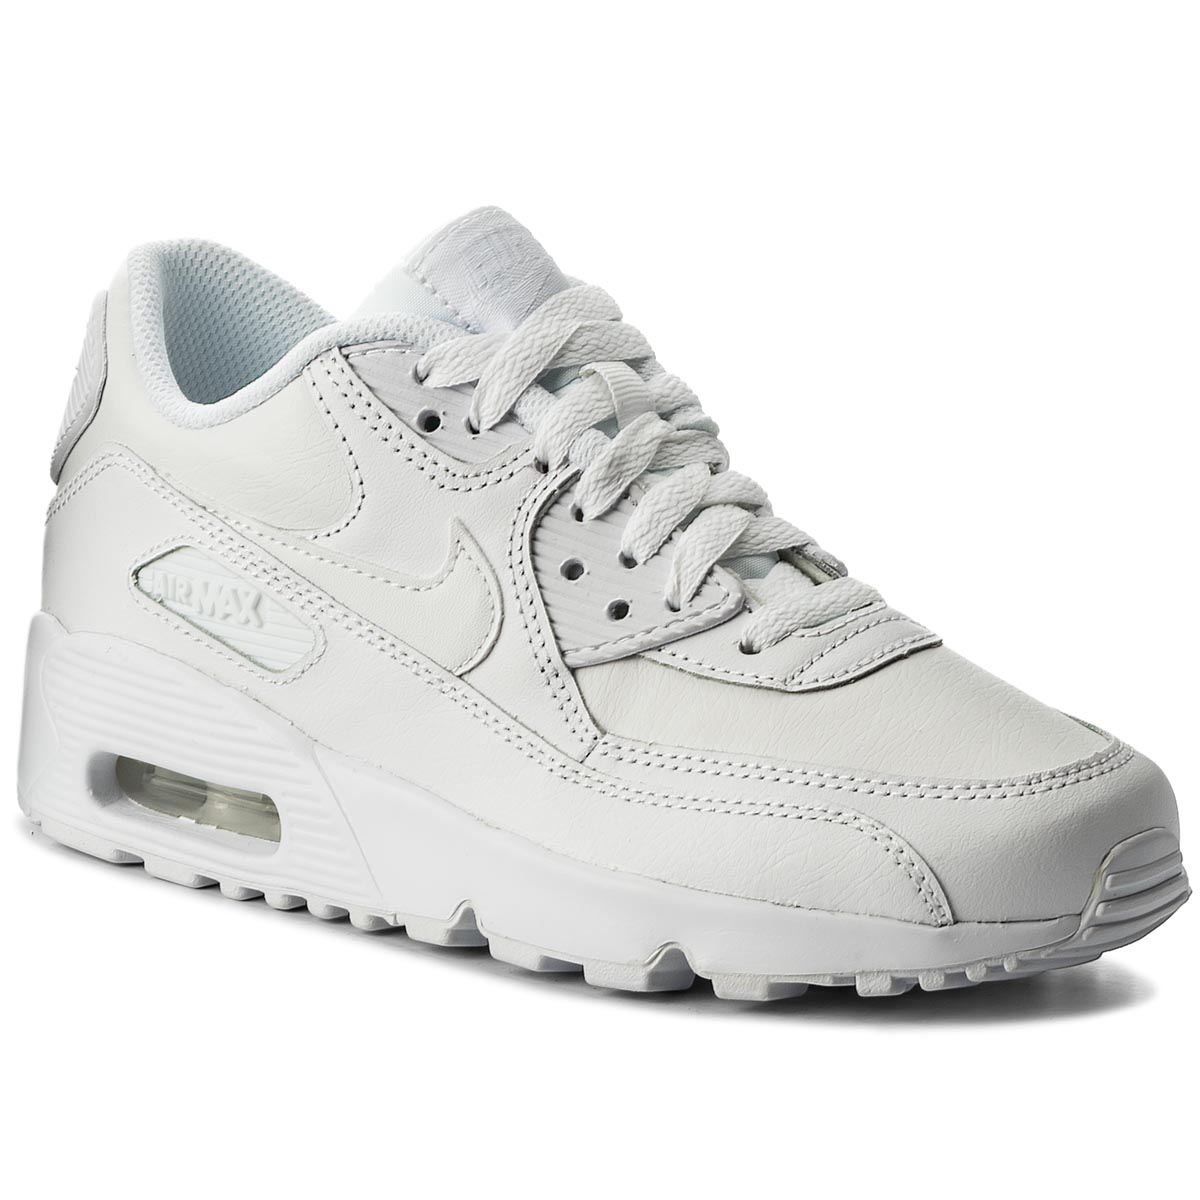 Topánky NIKE - Air Max 90 Ltr (GS) 833412 100 White/White